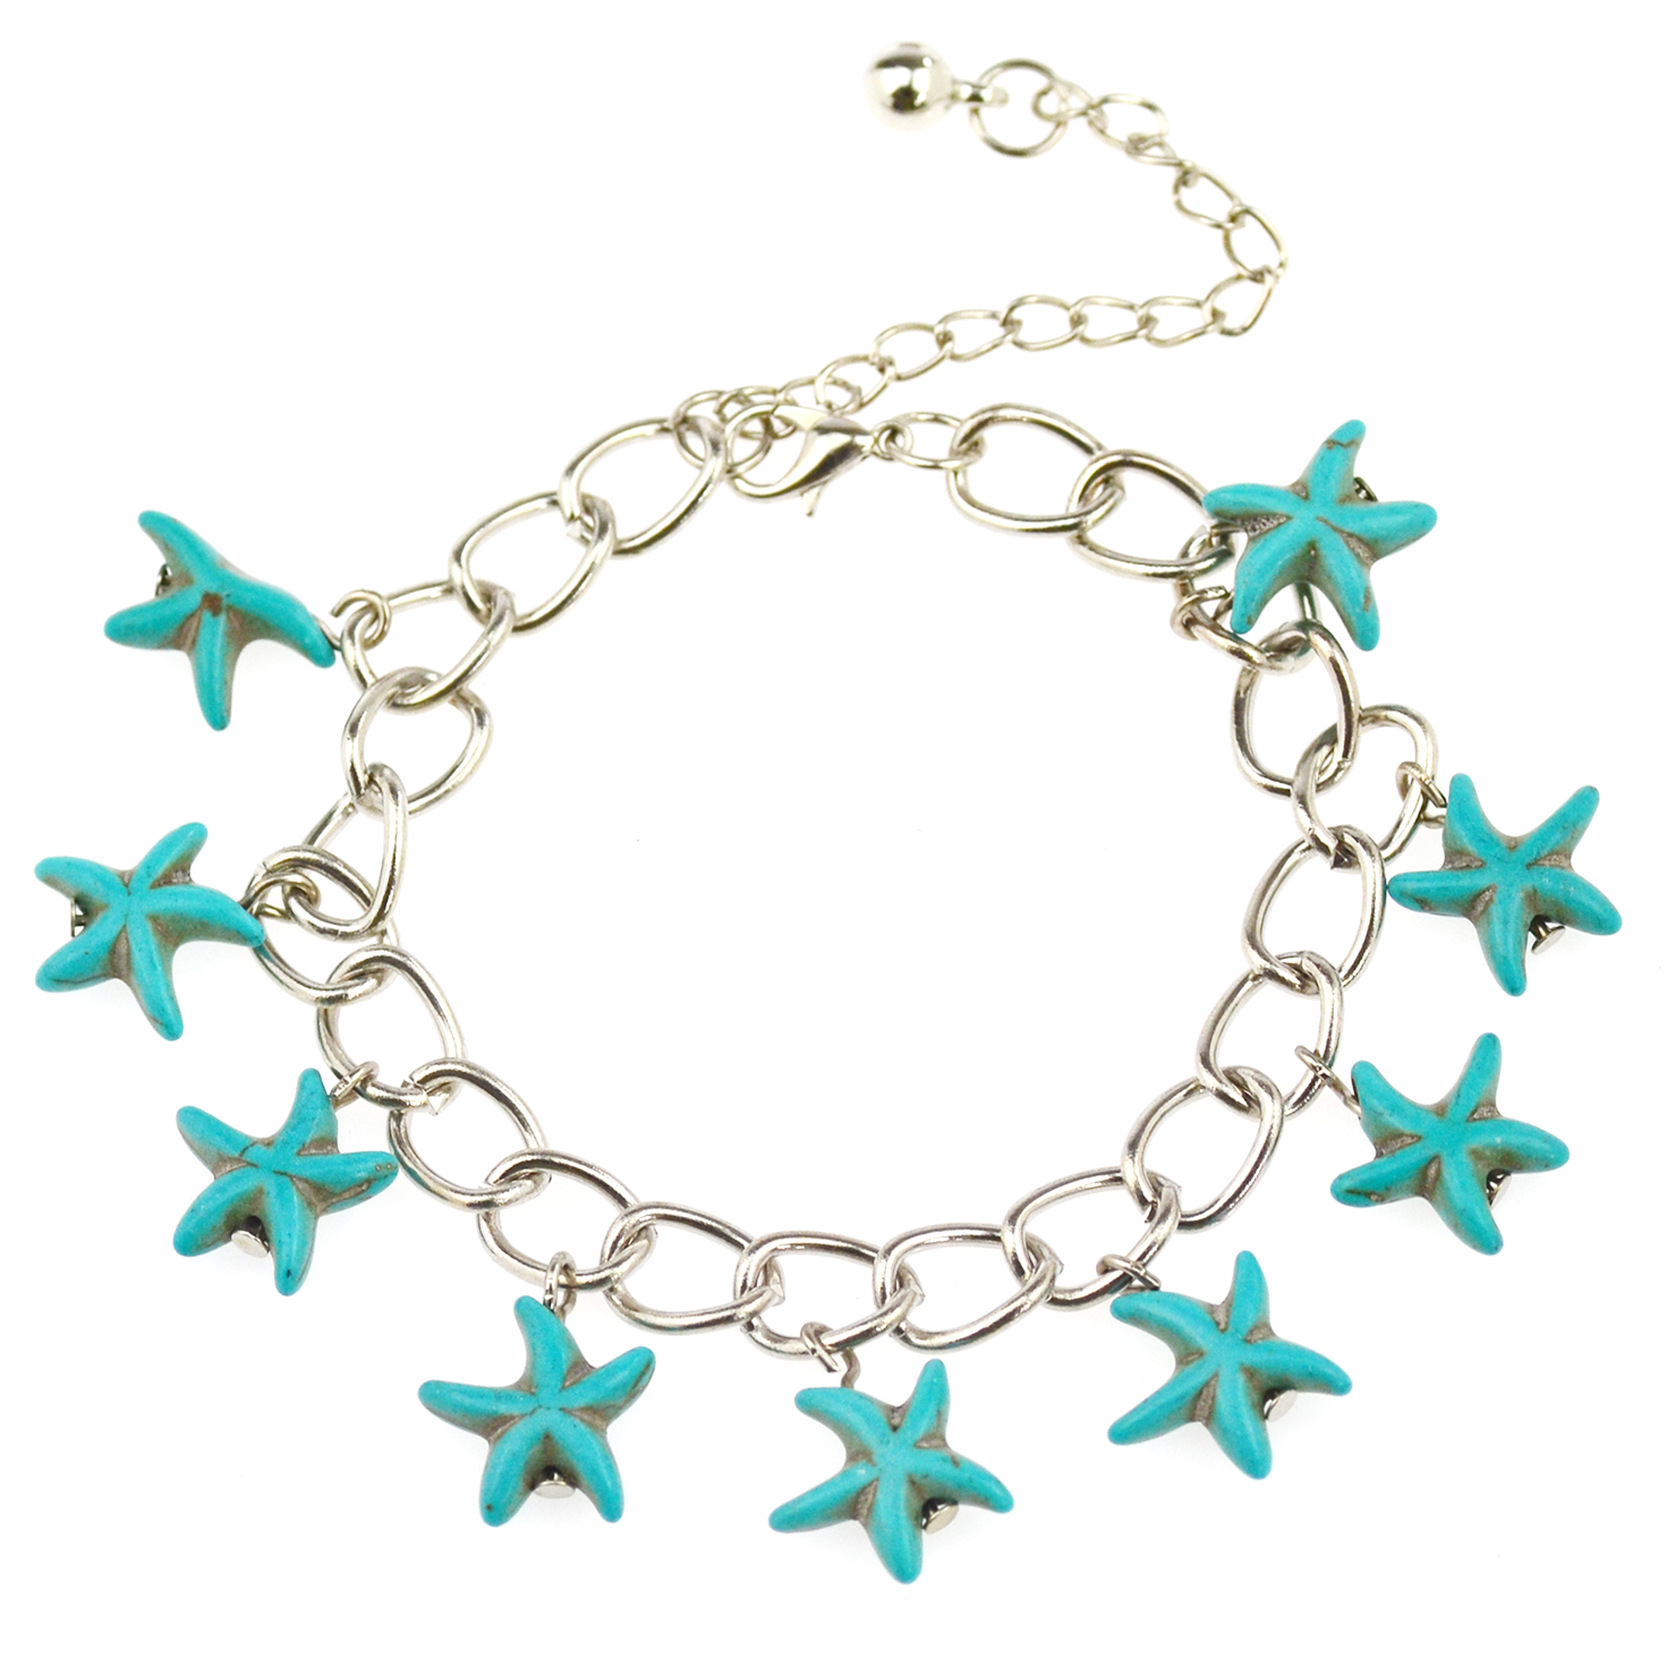 Speed sell ton source Europe and the United States jewelry wholesale Personality pentaram turquoise bracelets J1493 restorin anc(China (Mainland))